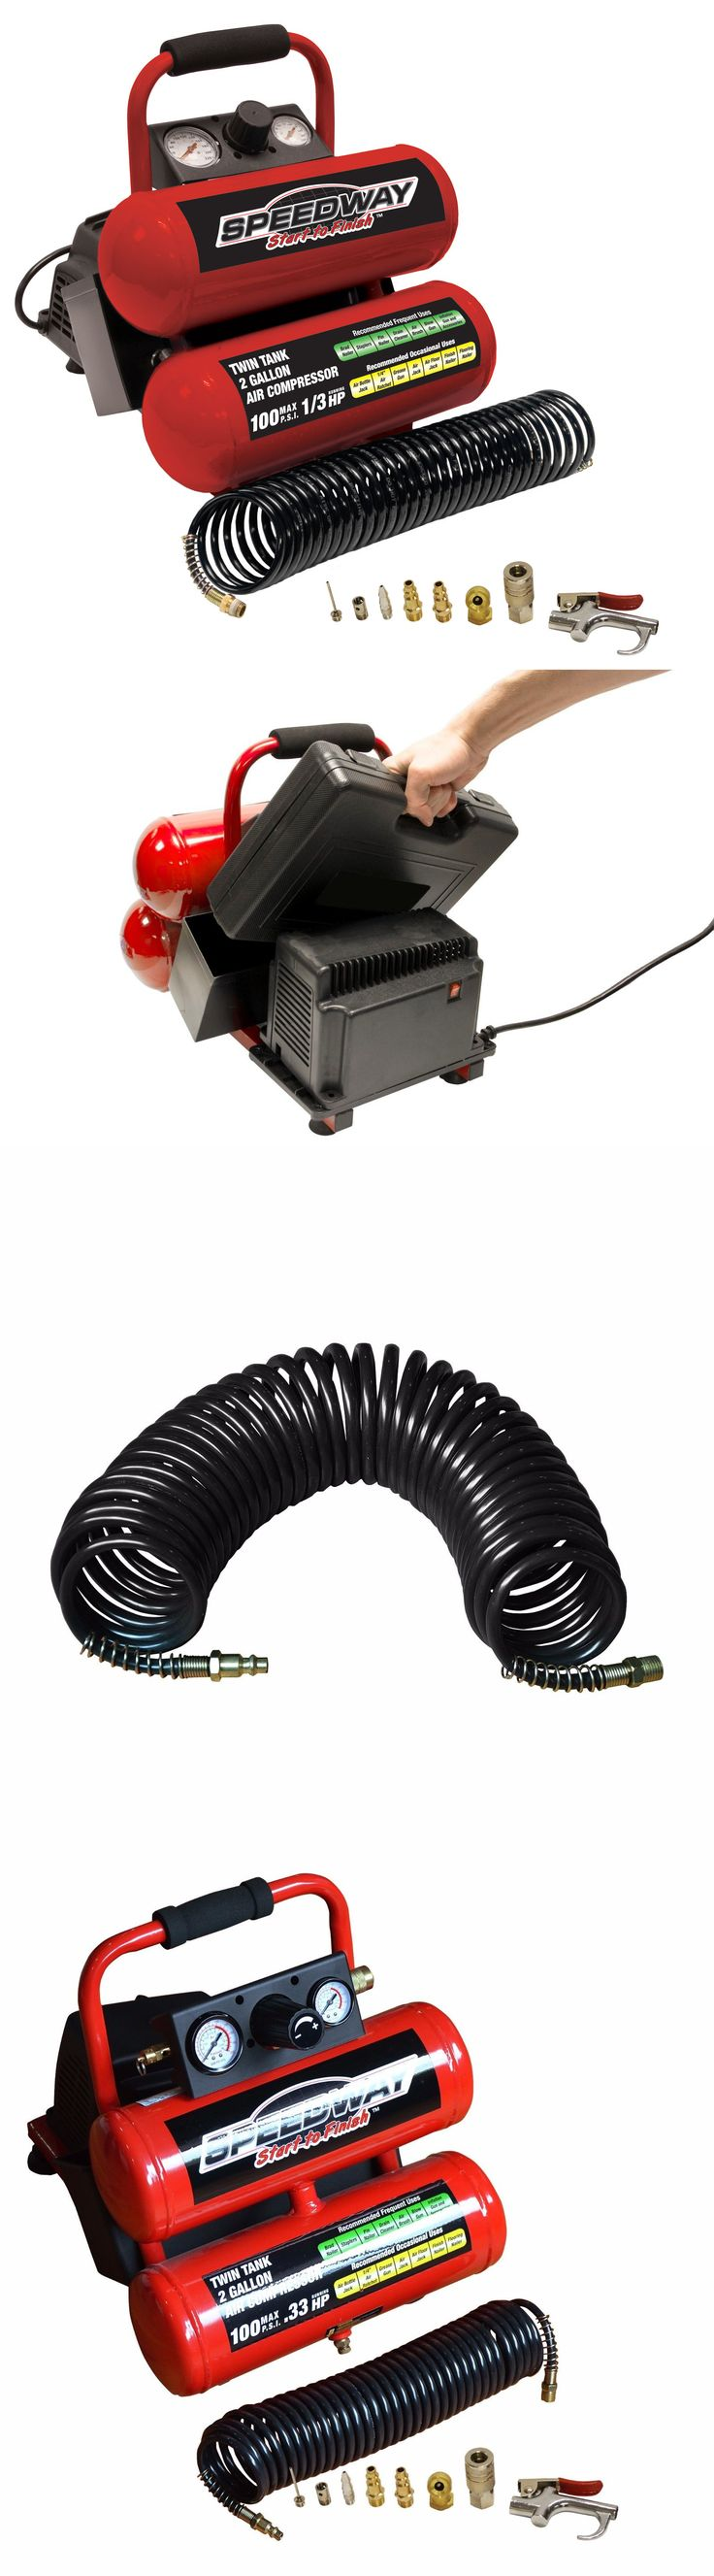 Air Compressors 30506: Speedway 2 Gallon Twin Stack Portable 1 2 Hp Air Compressor And Accessories 8465 -> BUY IT NOW ONLY: $79.99 on eBay!